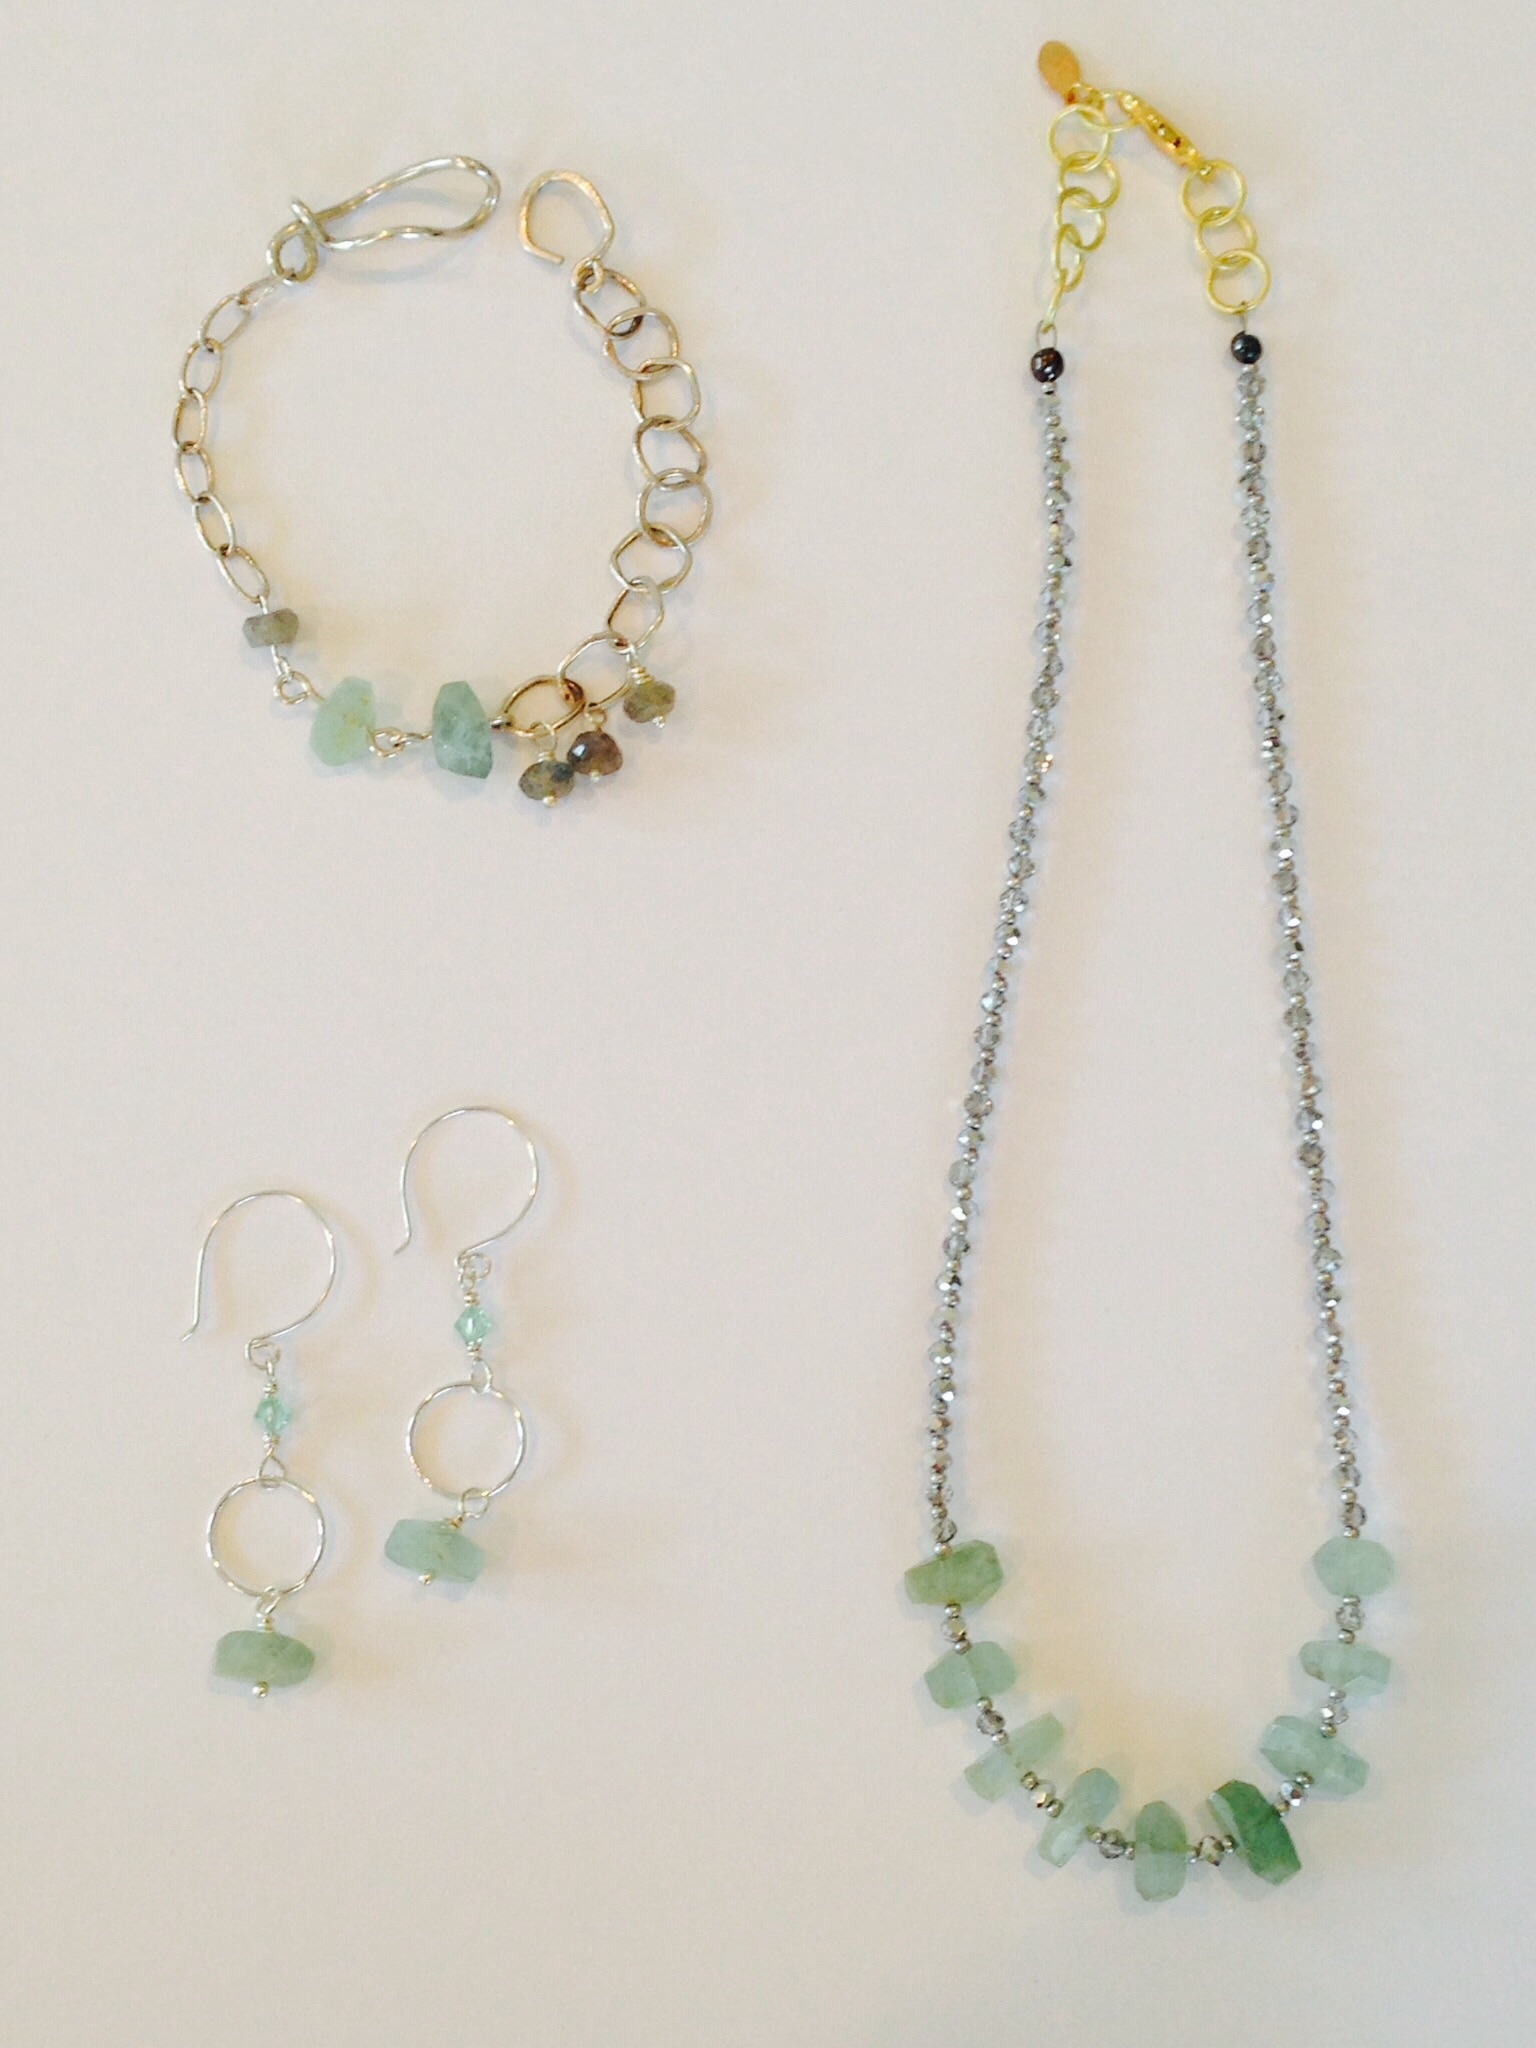 Aquamarine and a Hope for Spring!